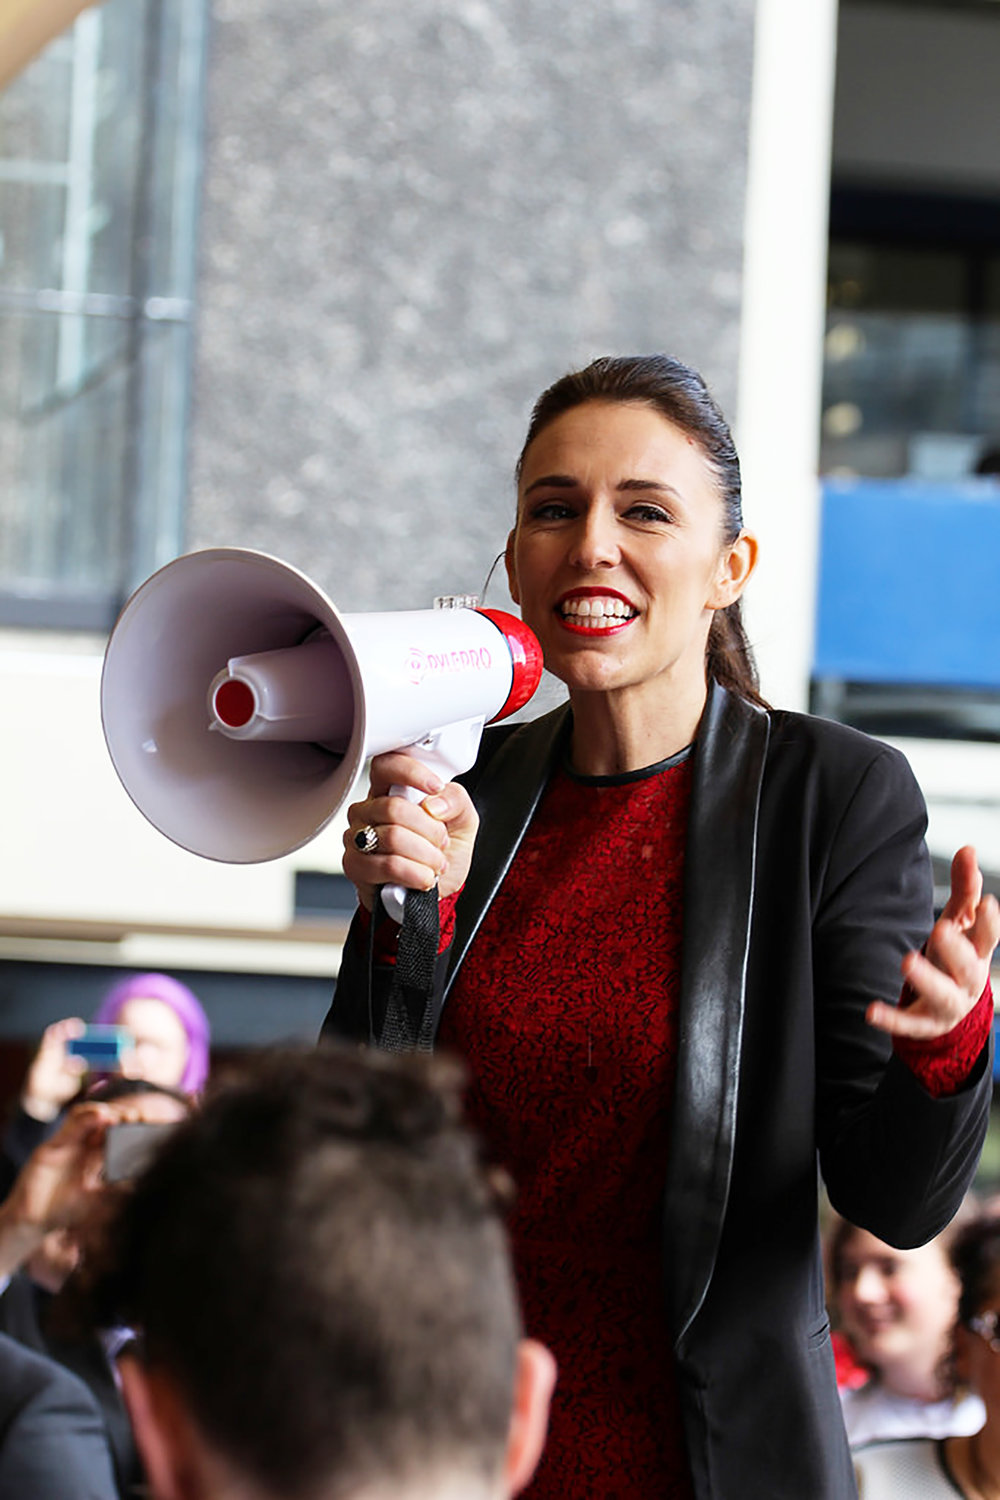 New Zealand Prime Minister Jacinda Ardern (pictured above) was quick to take political action following the mass shooting last week in Christchurch. The United States should respond similarly to gun violence in America (Ulysse Bellier/Creative commons).